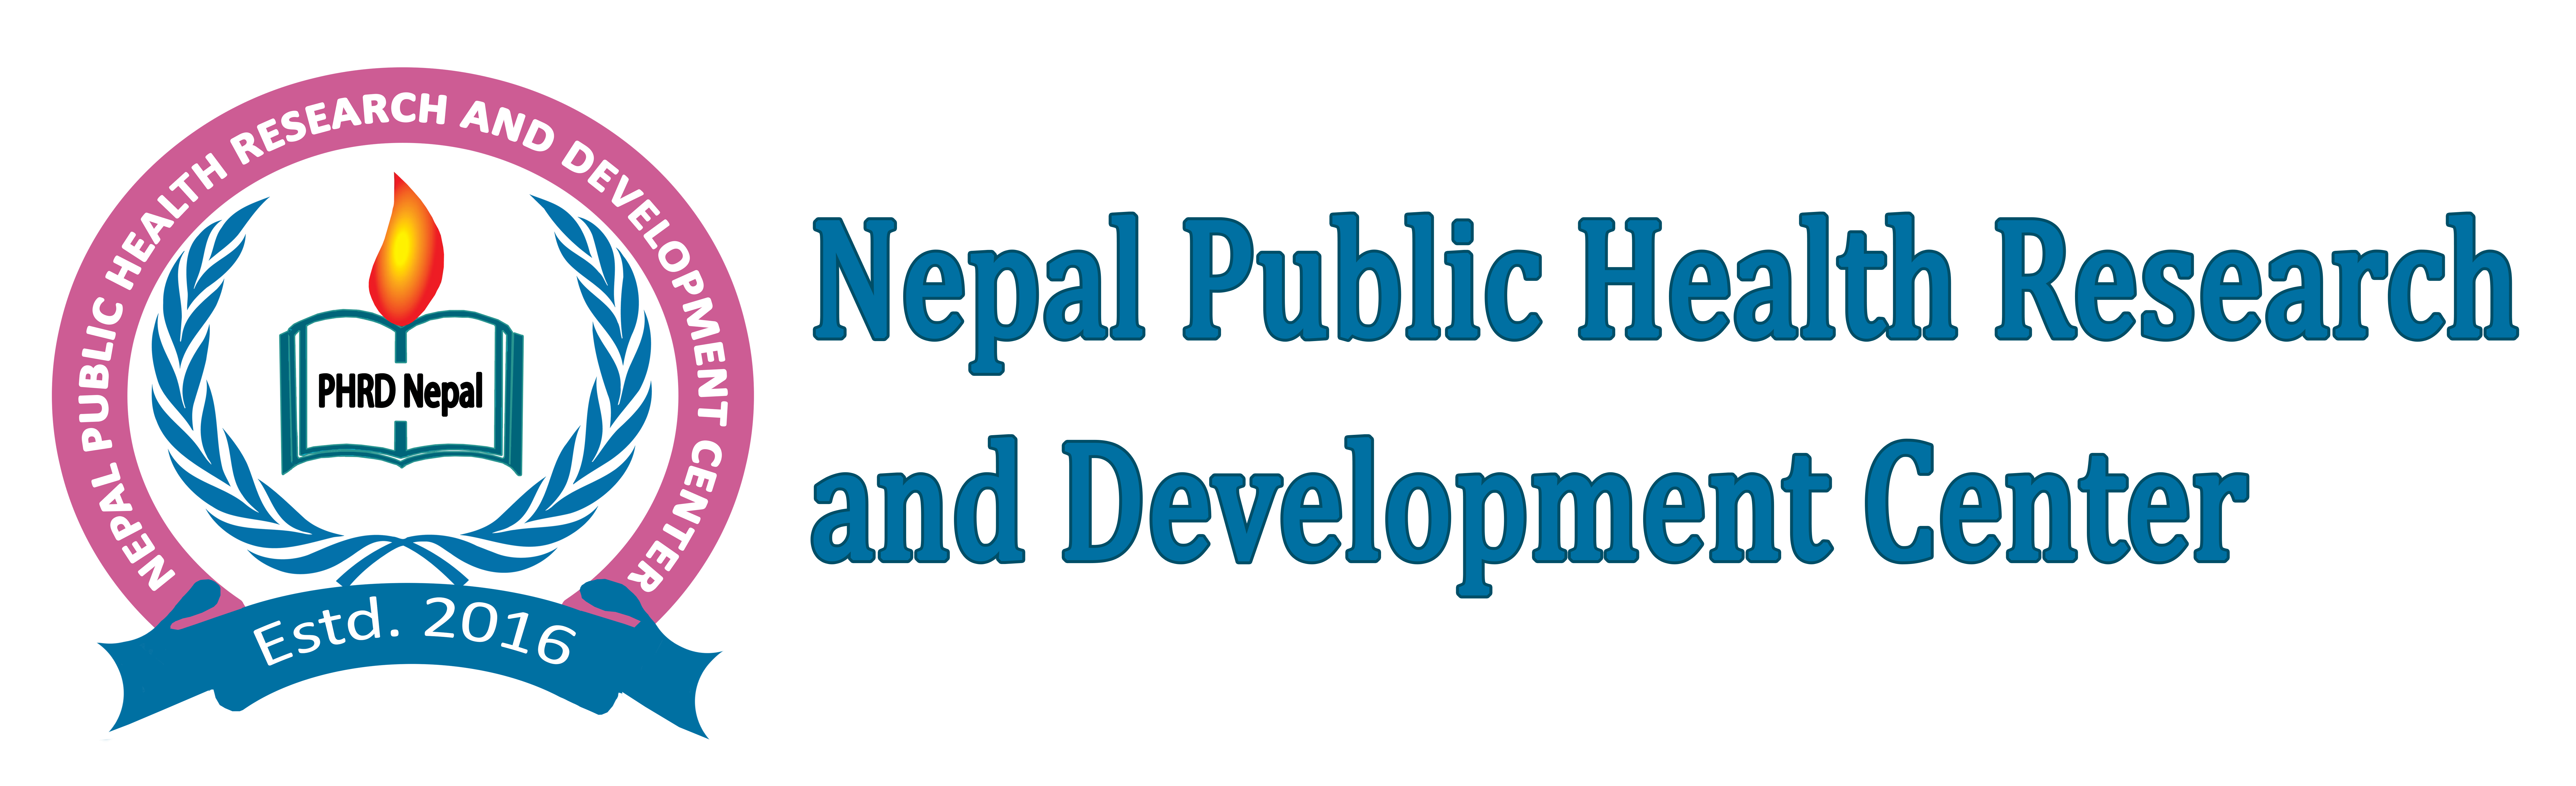 Nepal Public Health Research and Development Center